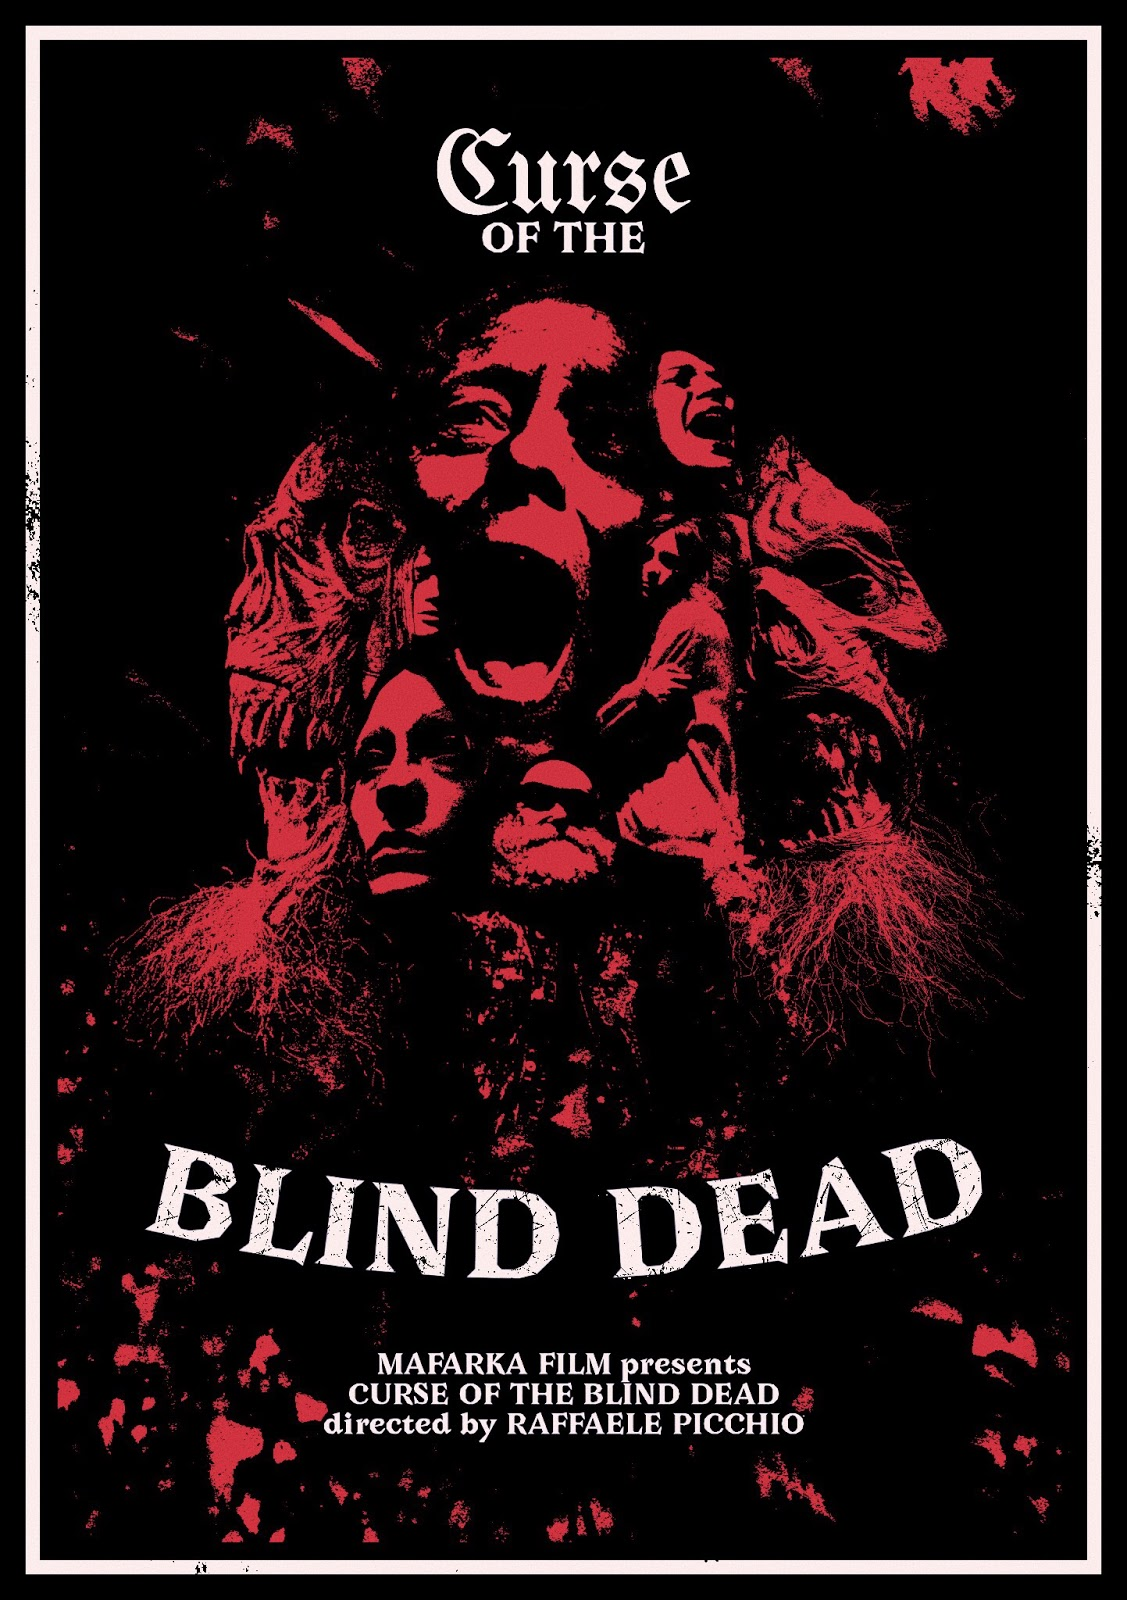 [NEWS] Continua la post-produzione di Curse of the Blind Dead